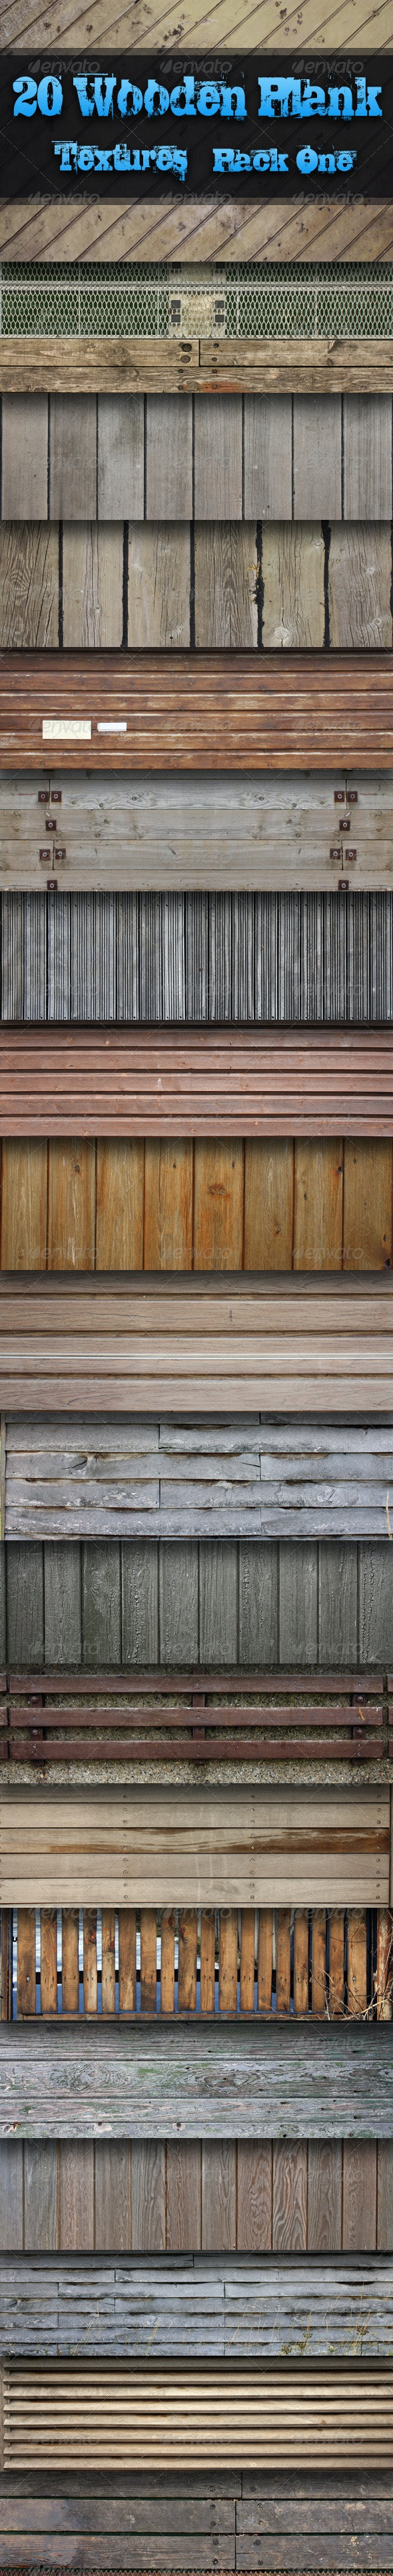 20 Wooden Plank Textures - Pack One  - Wood Textures